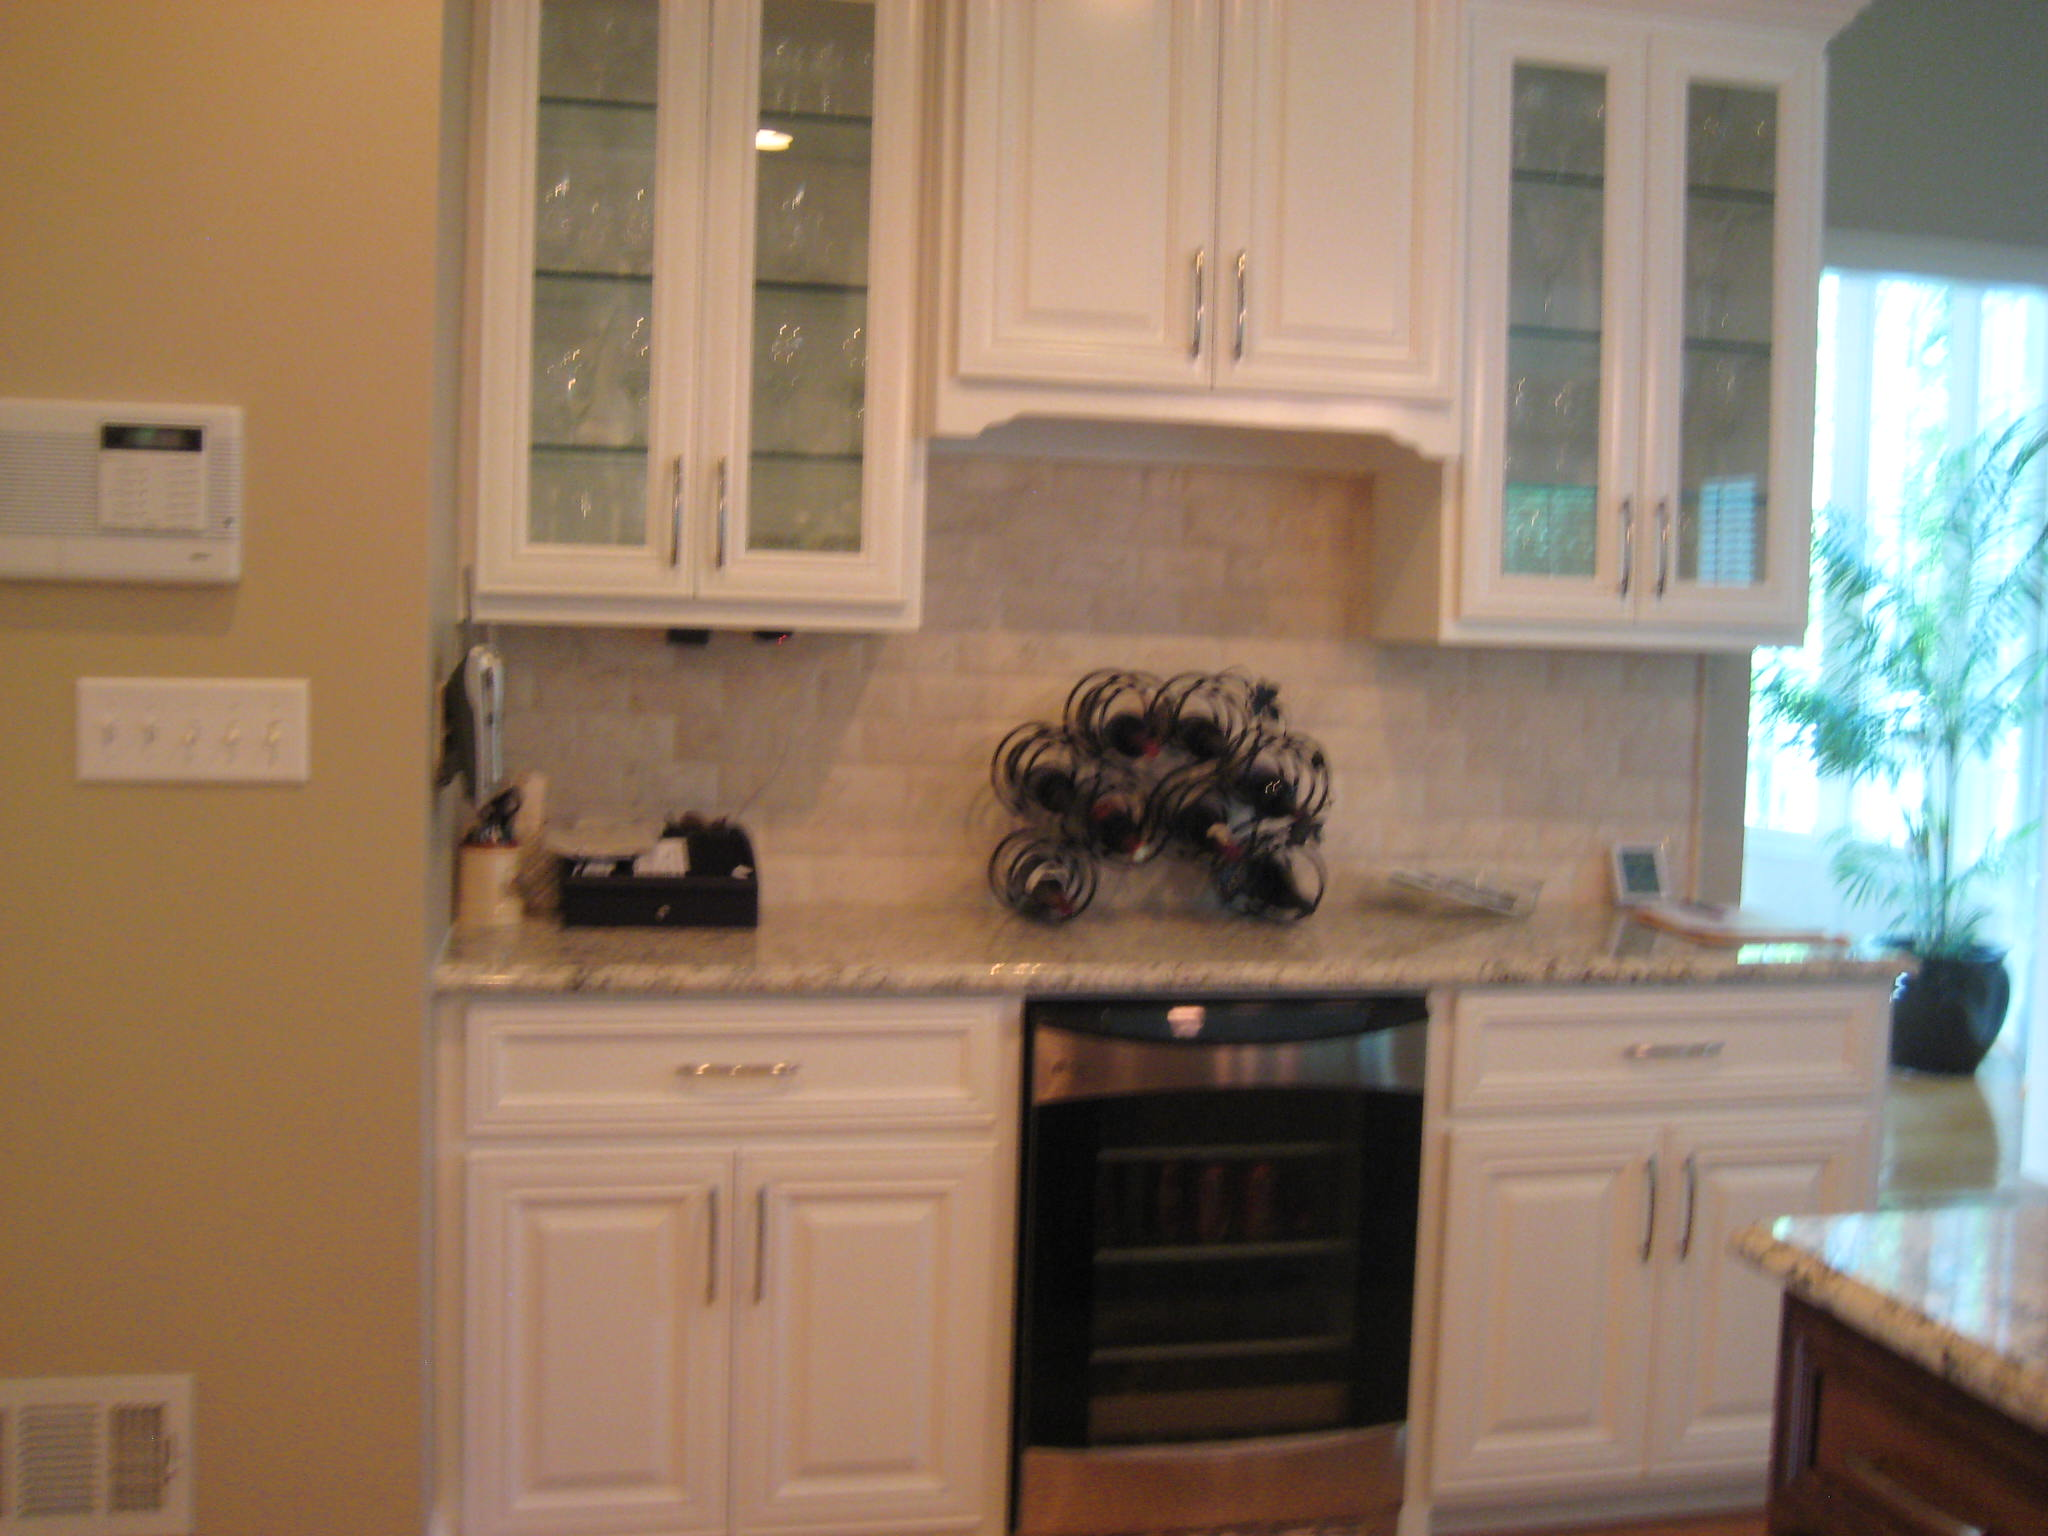 Kitchen renovation with new custom cabinets, appliances, granite and more.